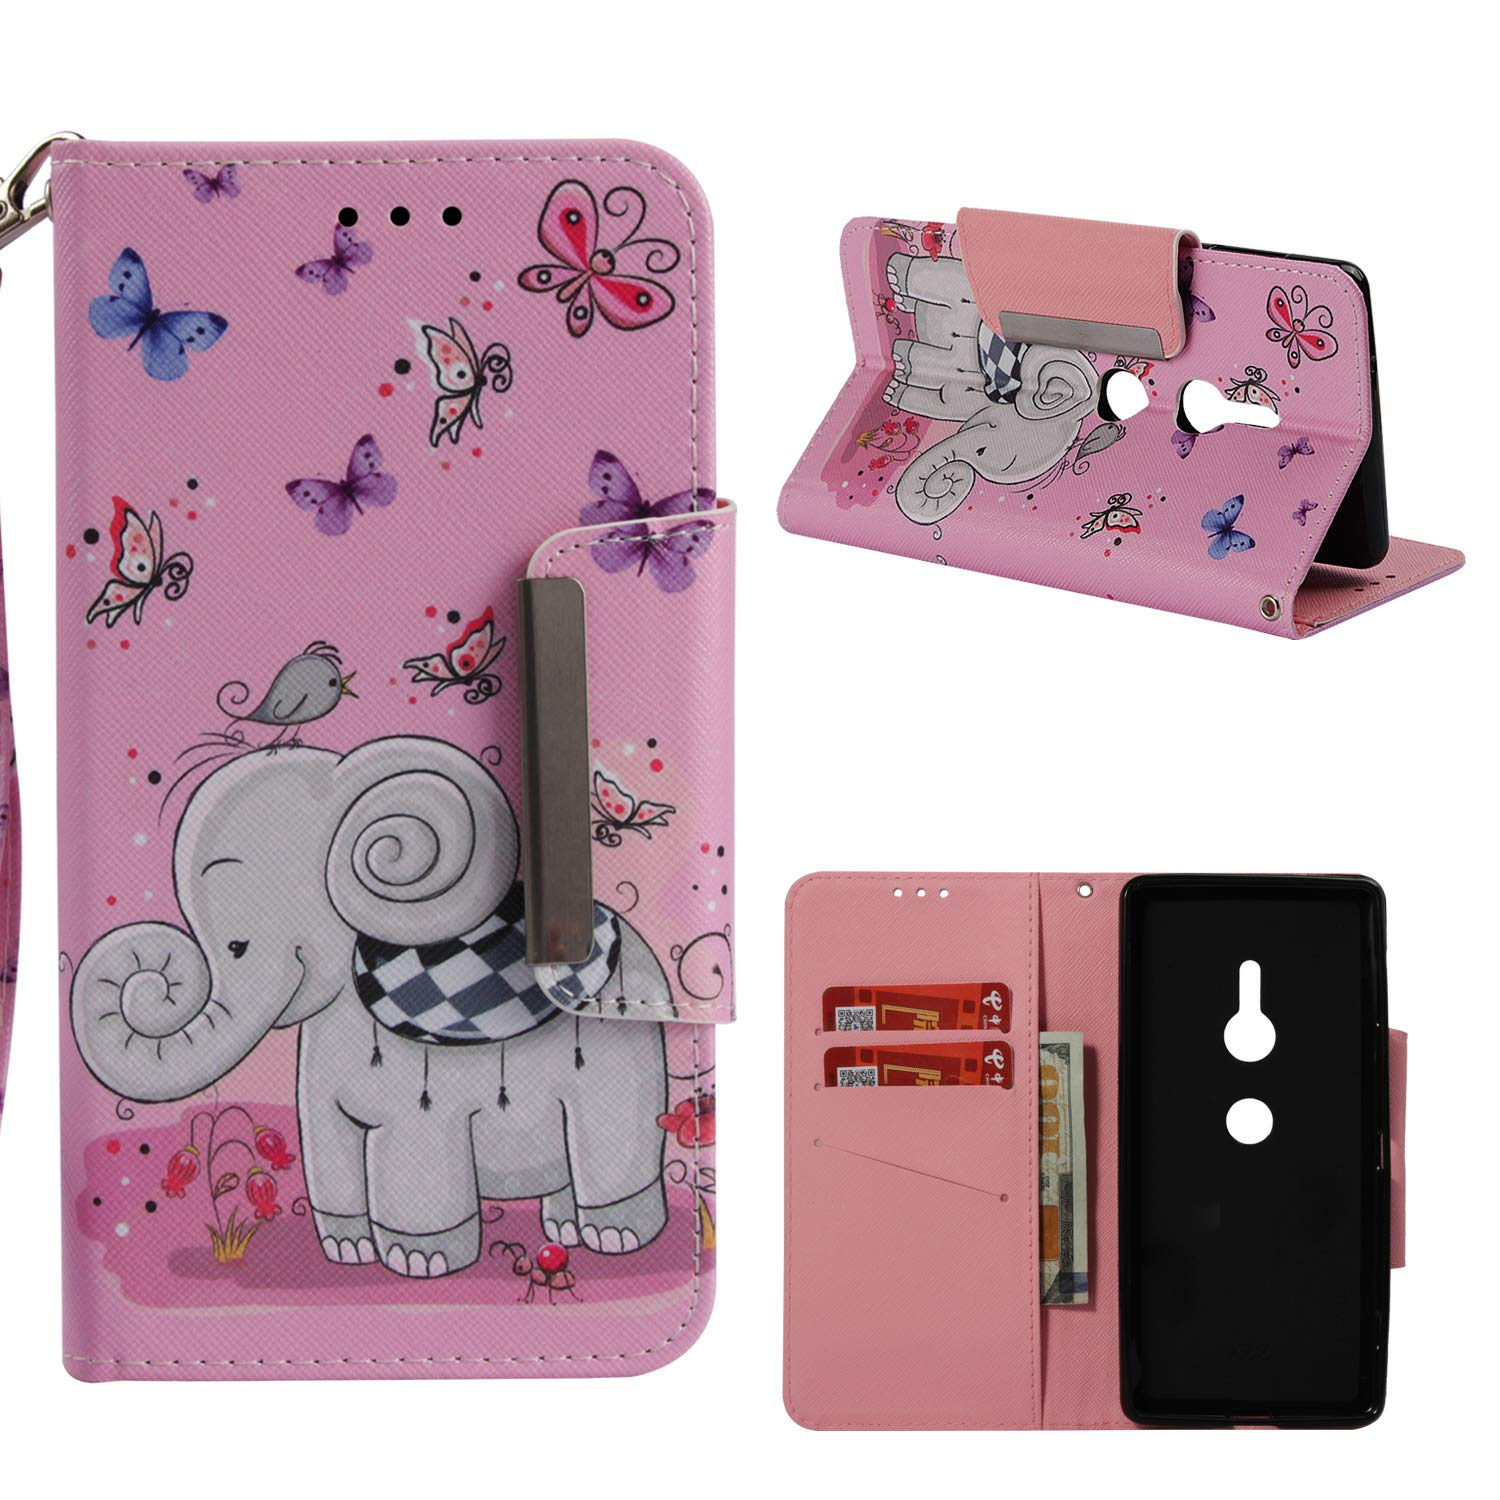 Leather Wallet Case for Sony Xperia XZ 2,Shinyzone Cute Cartoon Butterfly and Elephant Painted Pattern Flip Stand Case,Wristlet & Metal Magnetic Closure Protective Cover